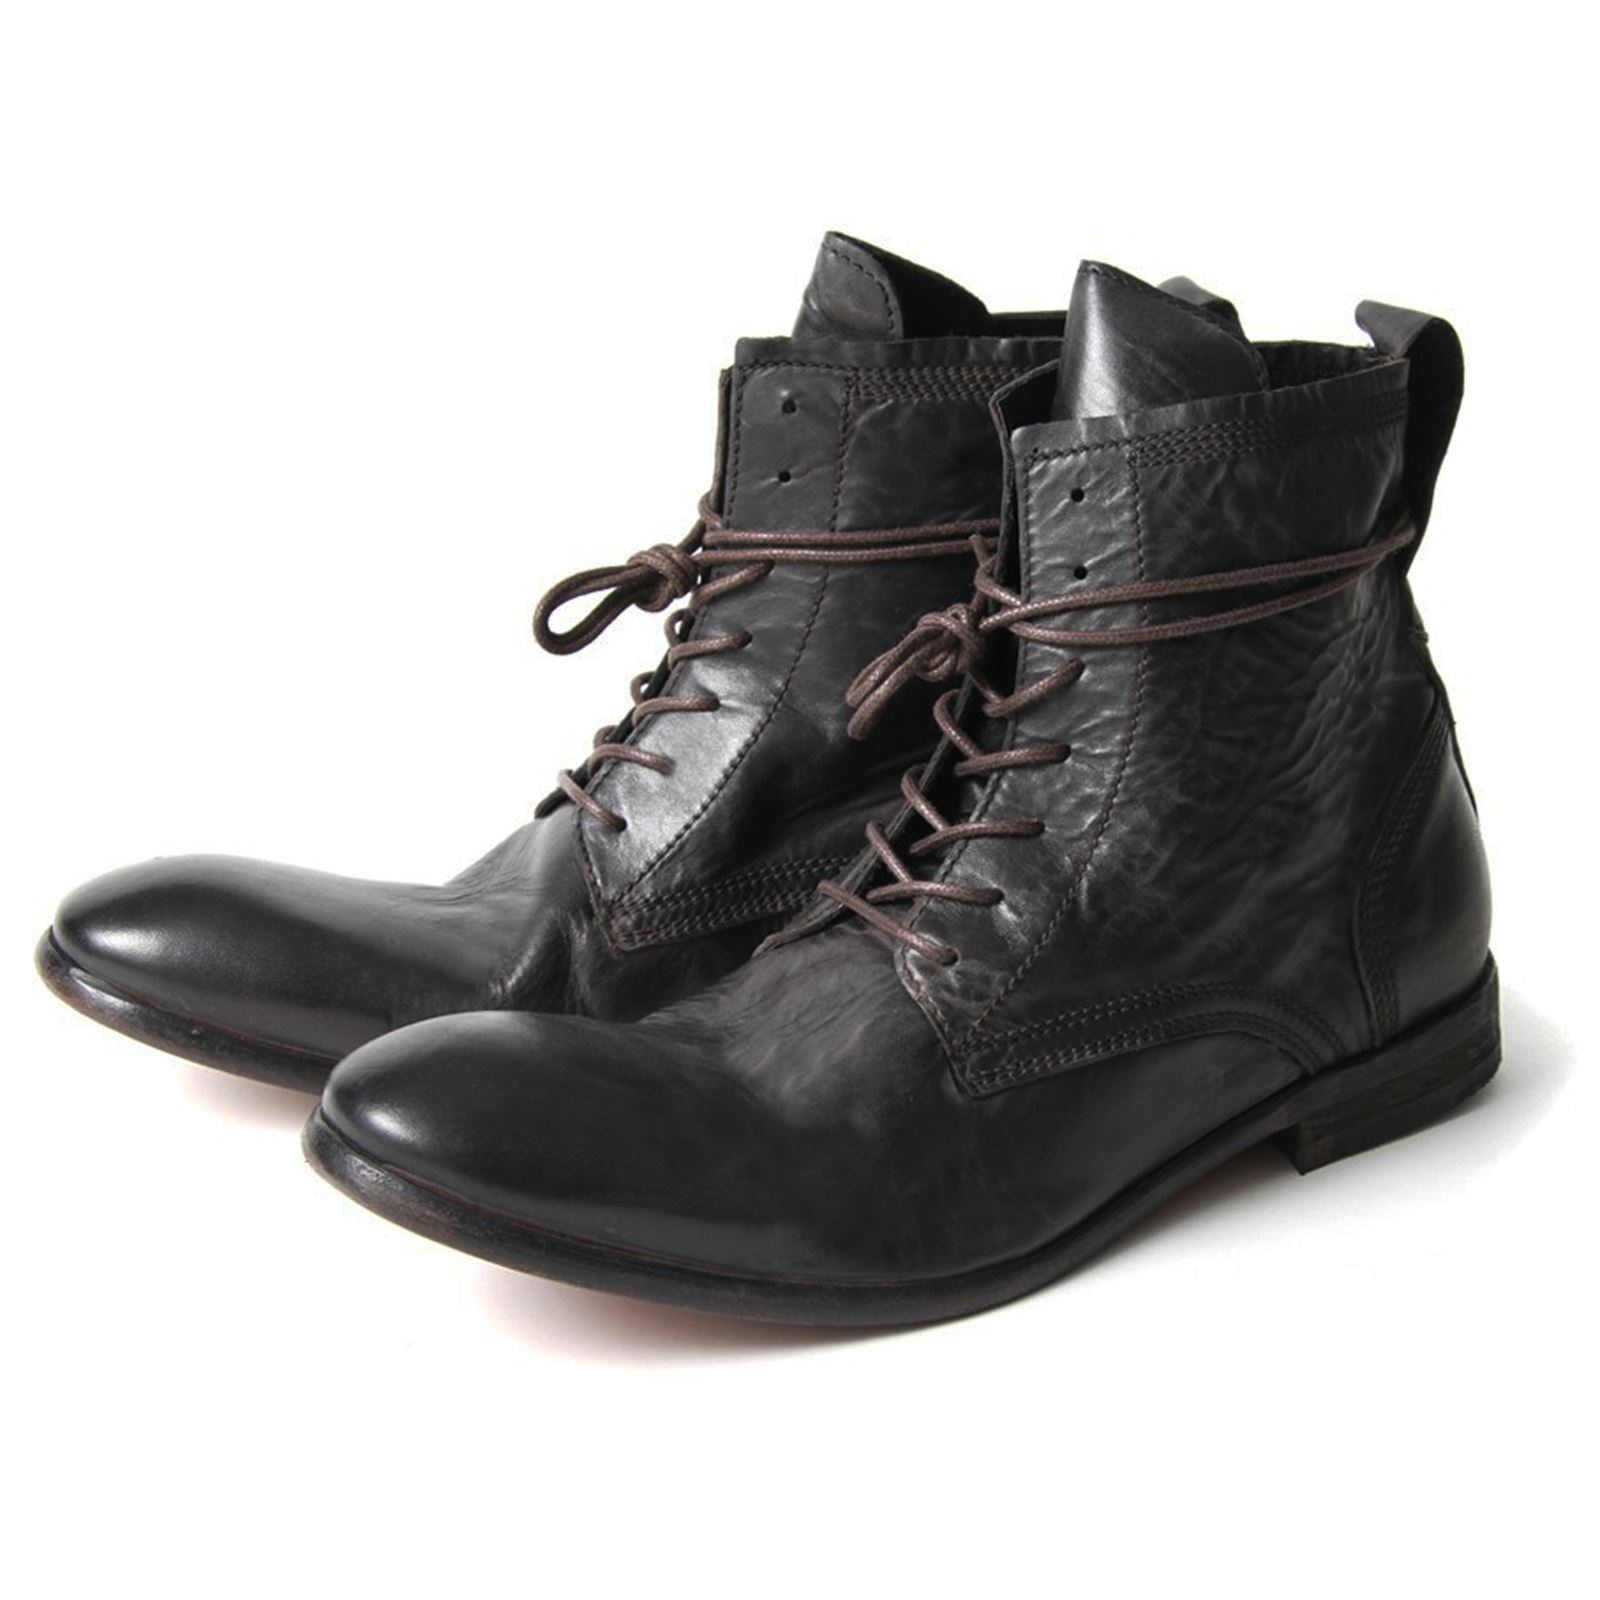 h by hudson boots swathmore black leather mens boot ebay